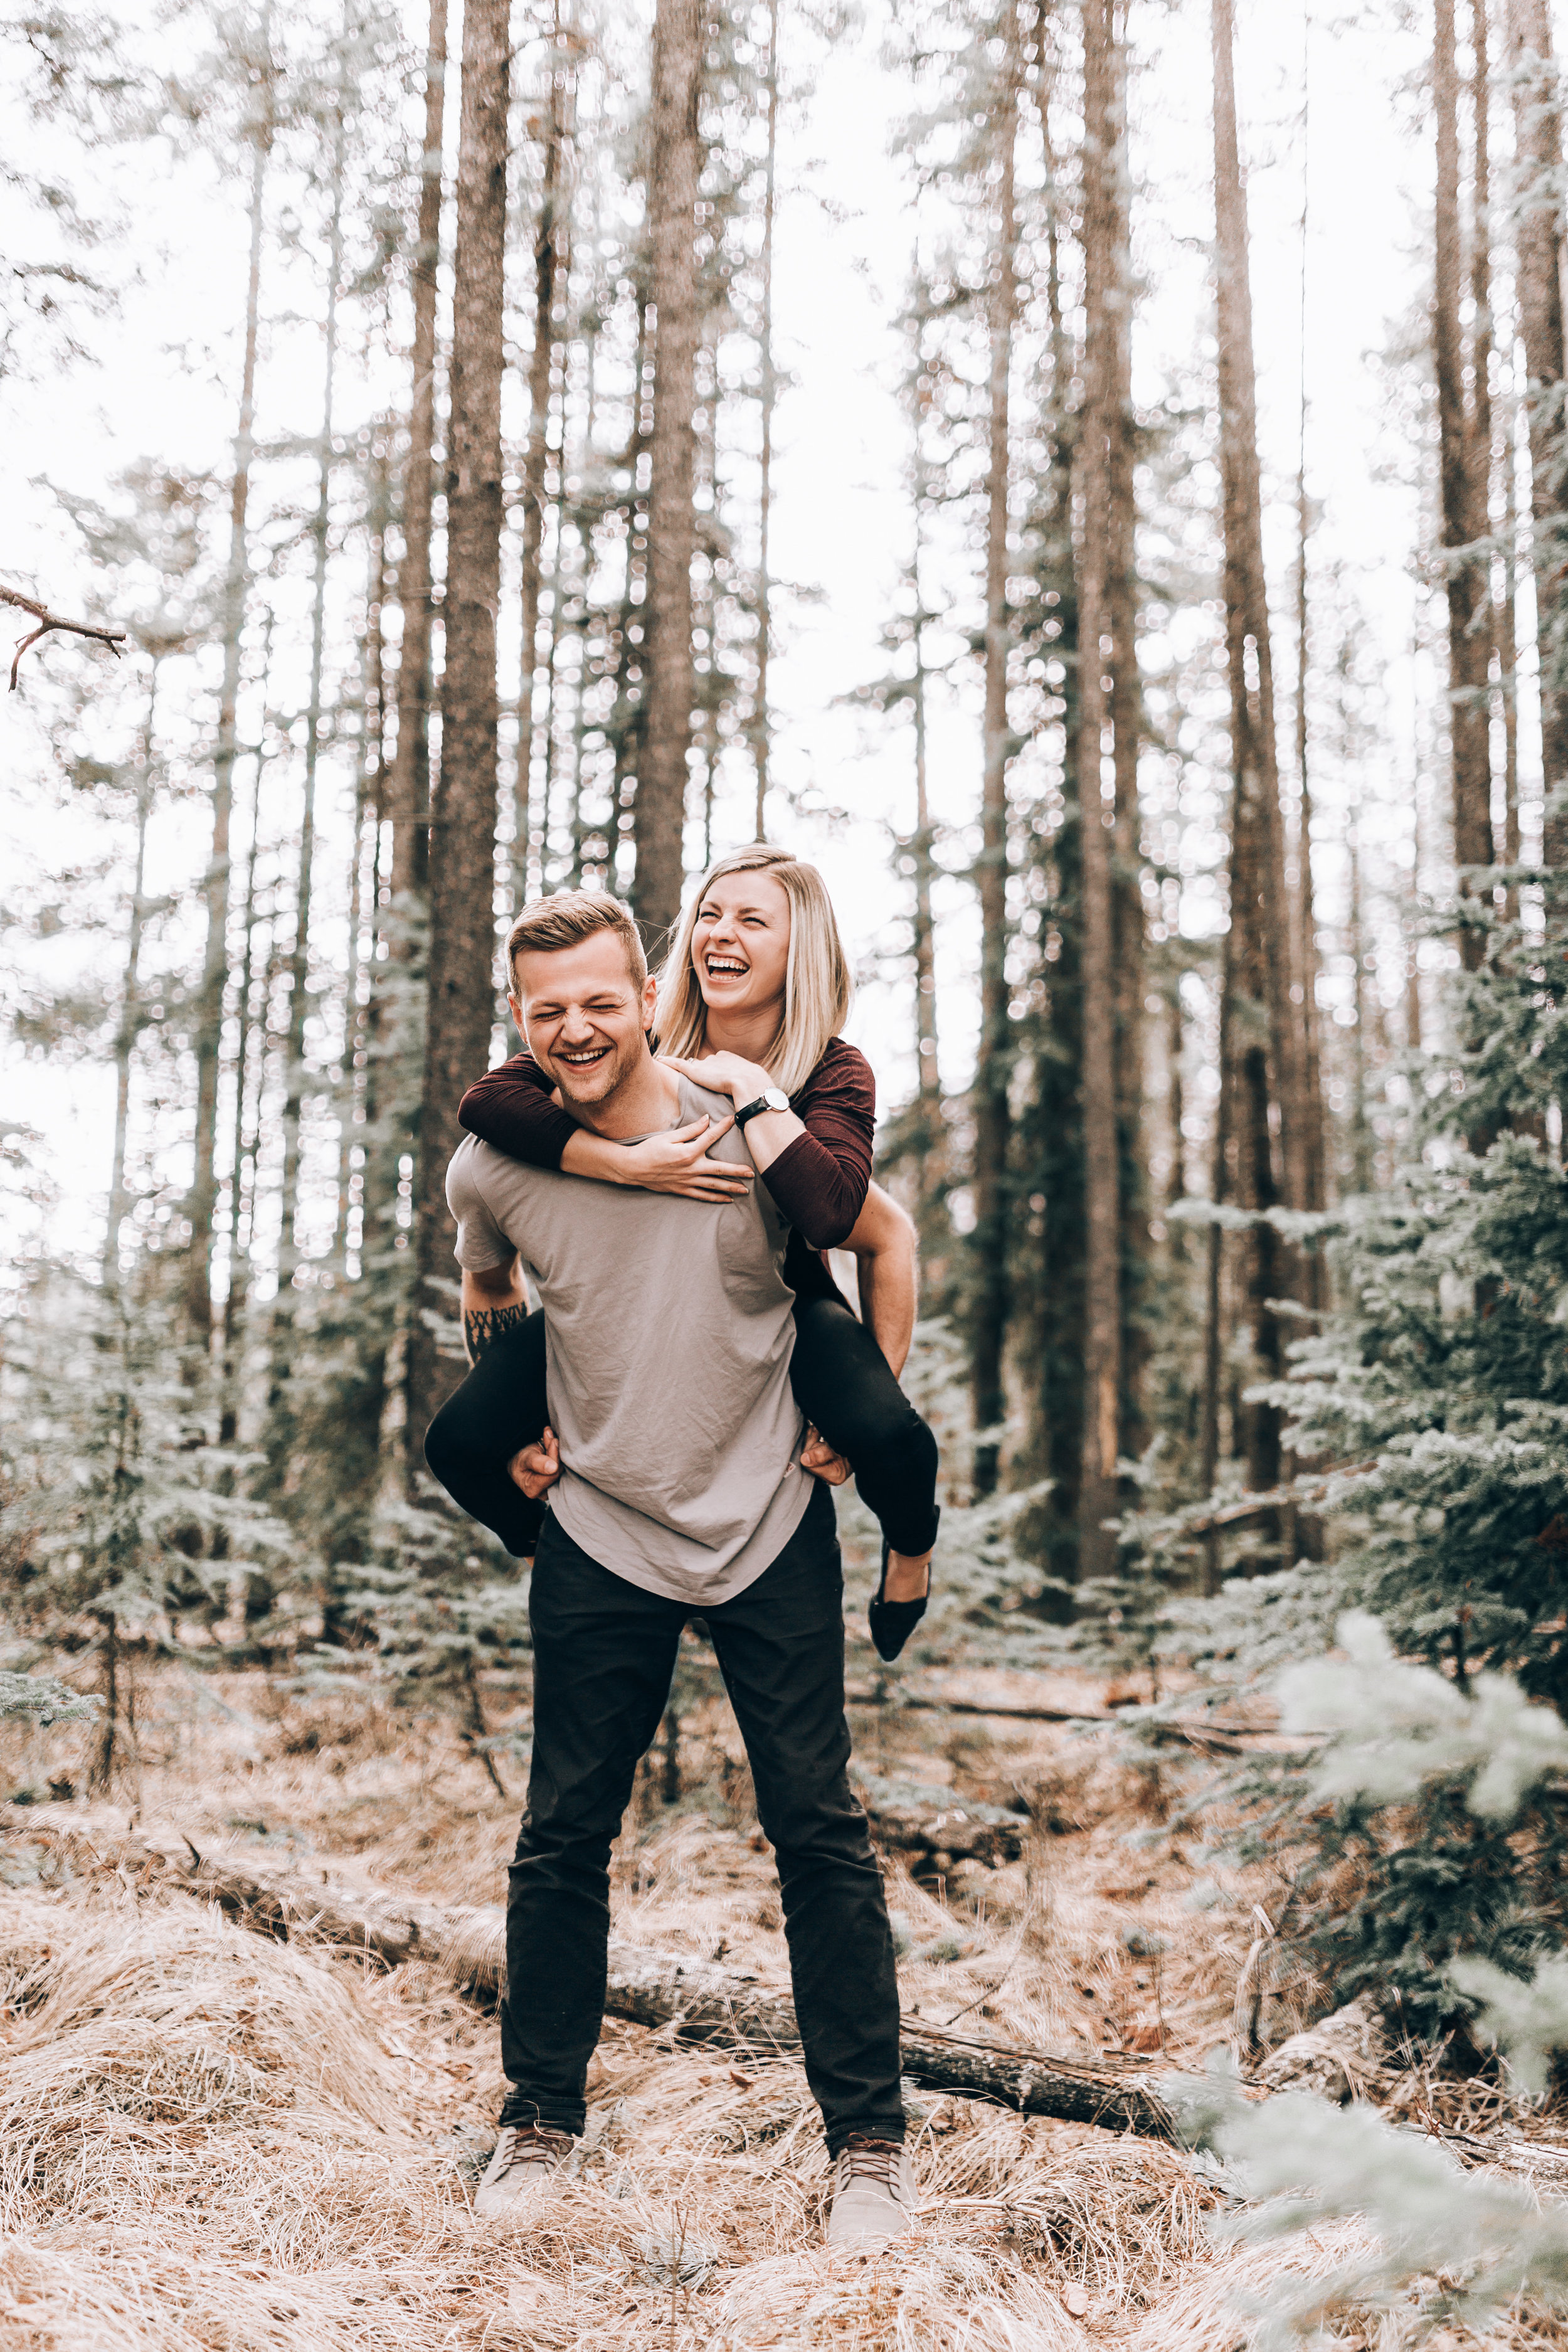 simpleperfectionsphotography.cullen+chelsey-33.jpg